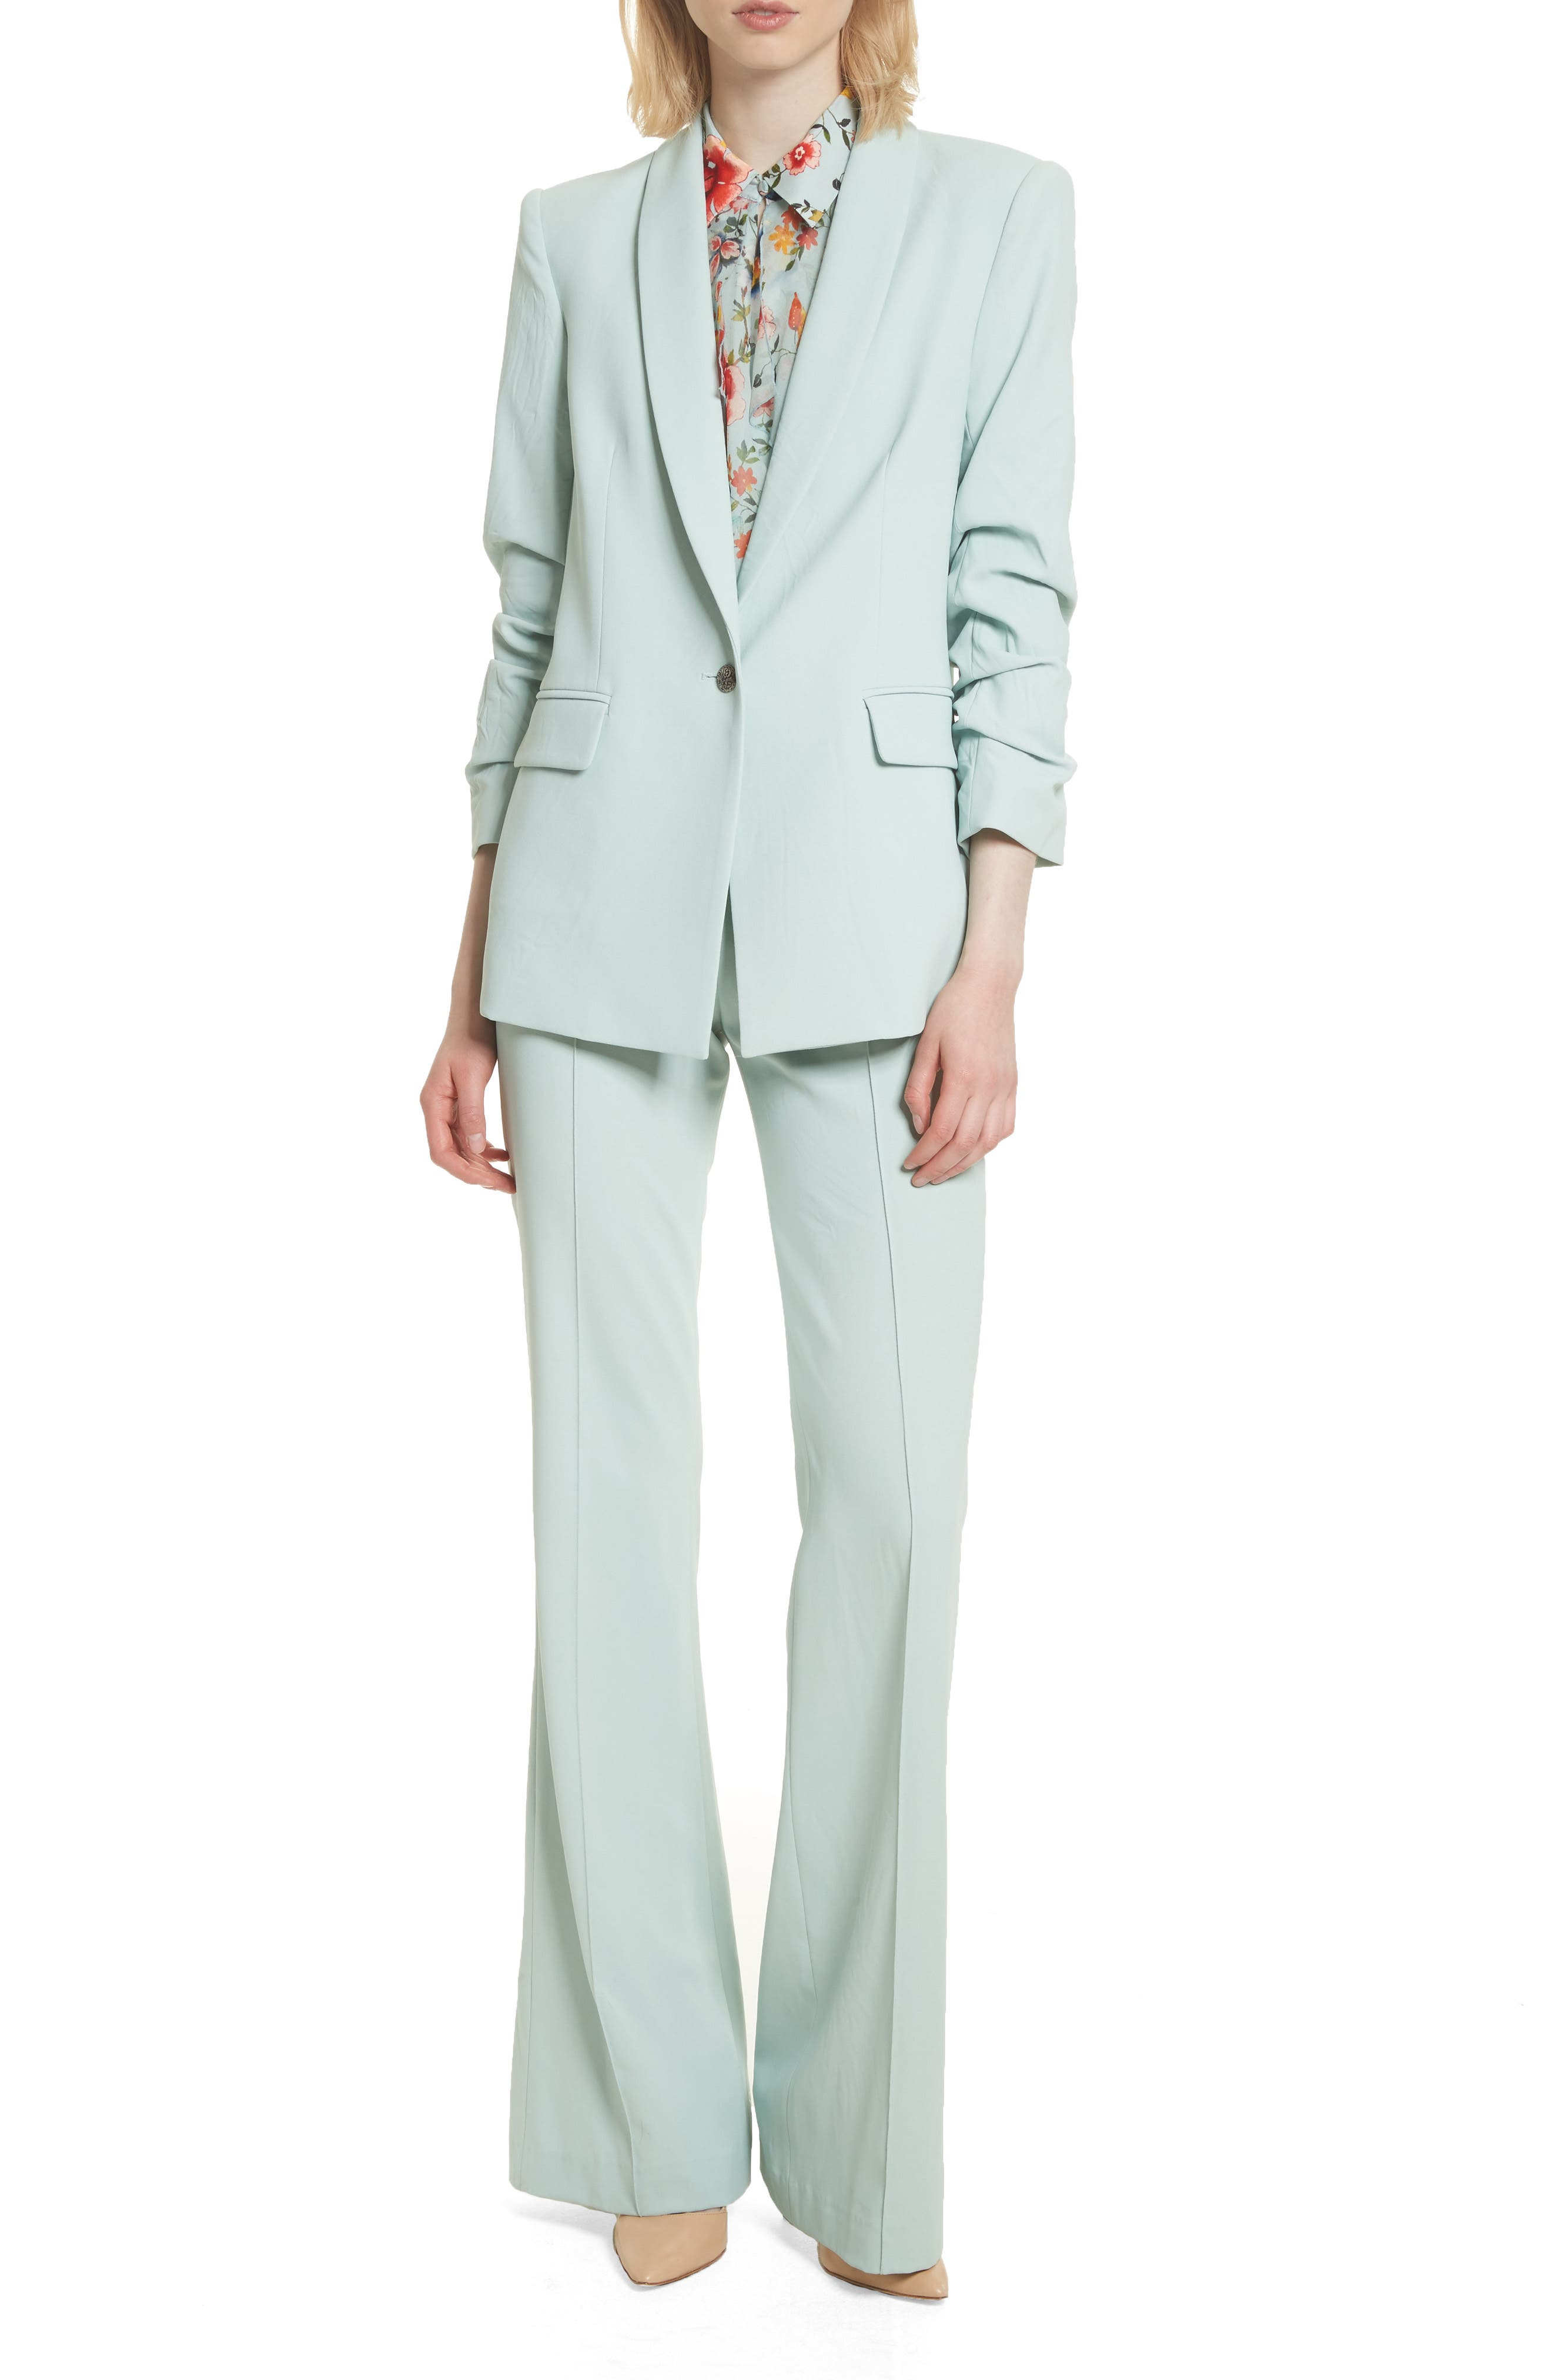 Ruched Sleeve Blazer,                             Alternate thumbnail 7, color,                             Light Dusty Aqua